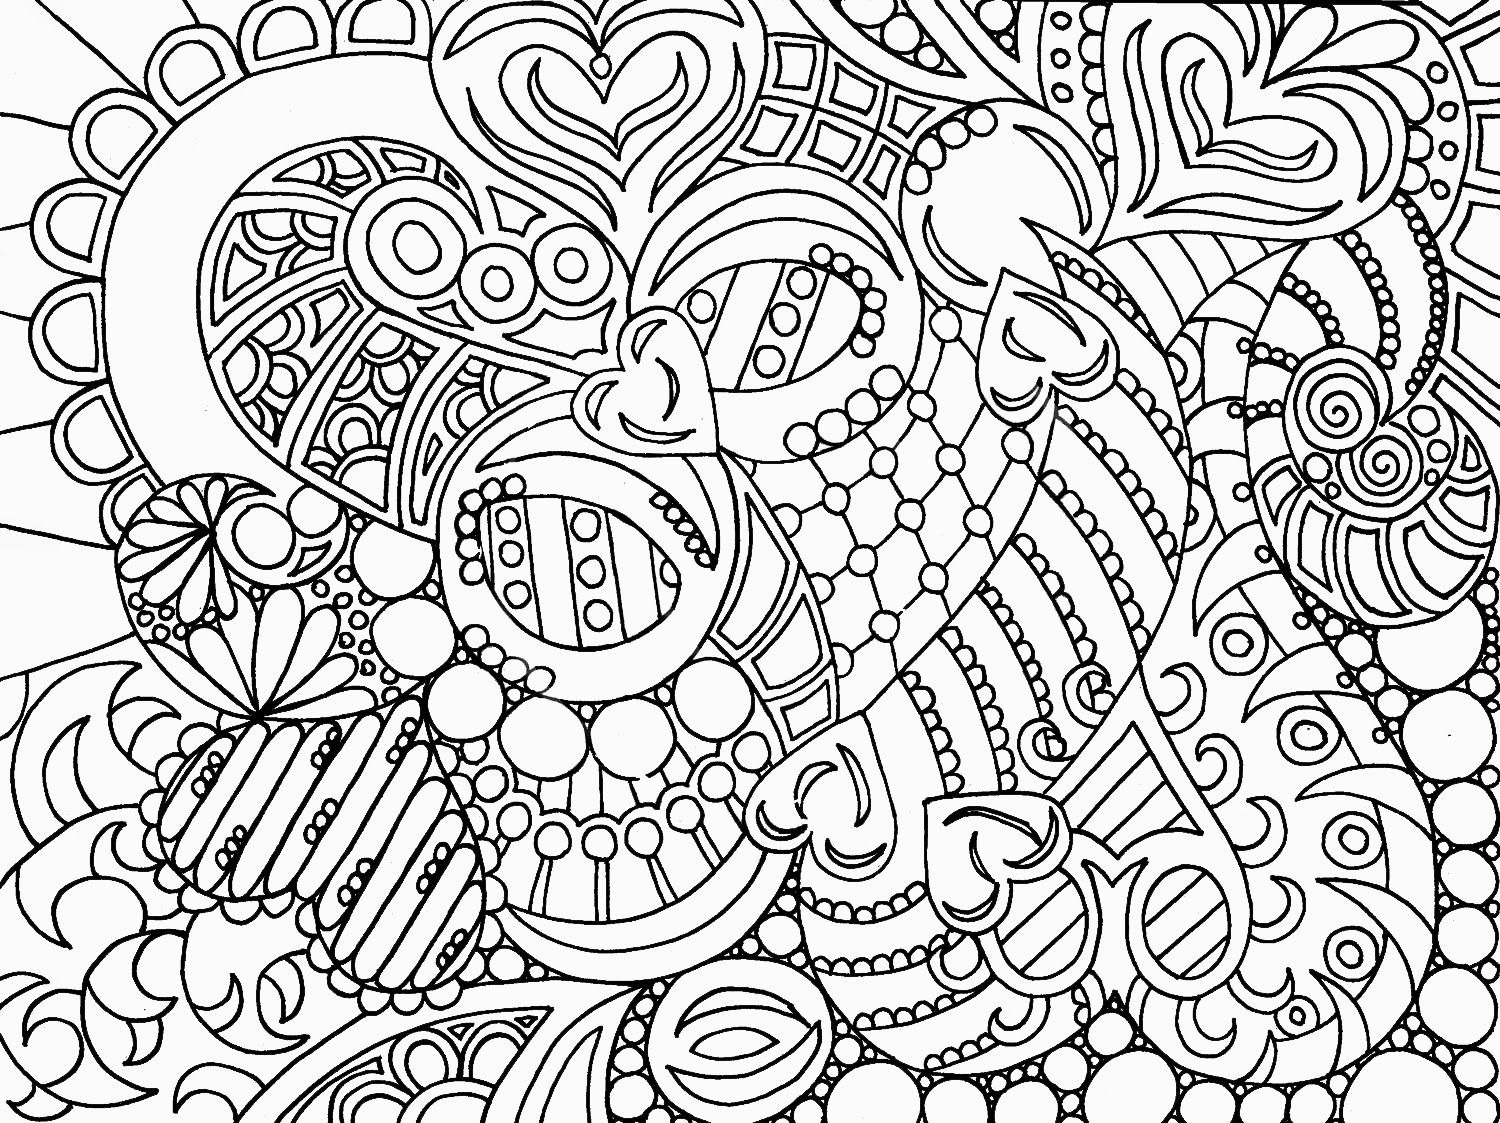 Abstract Coloring Pages To Download And Print For Free 111